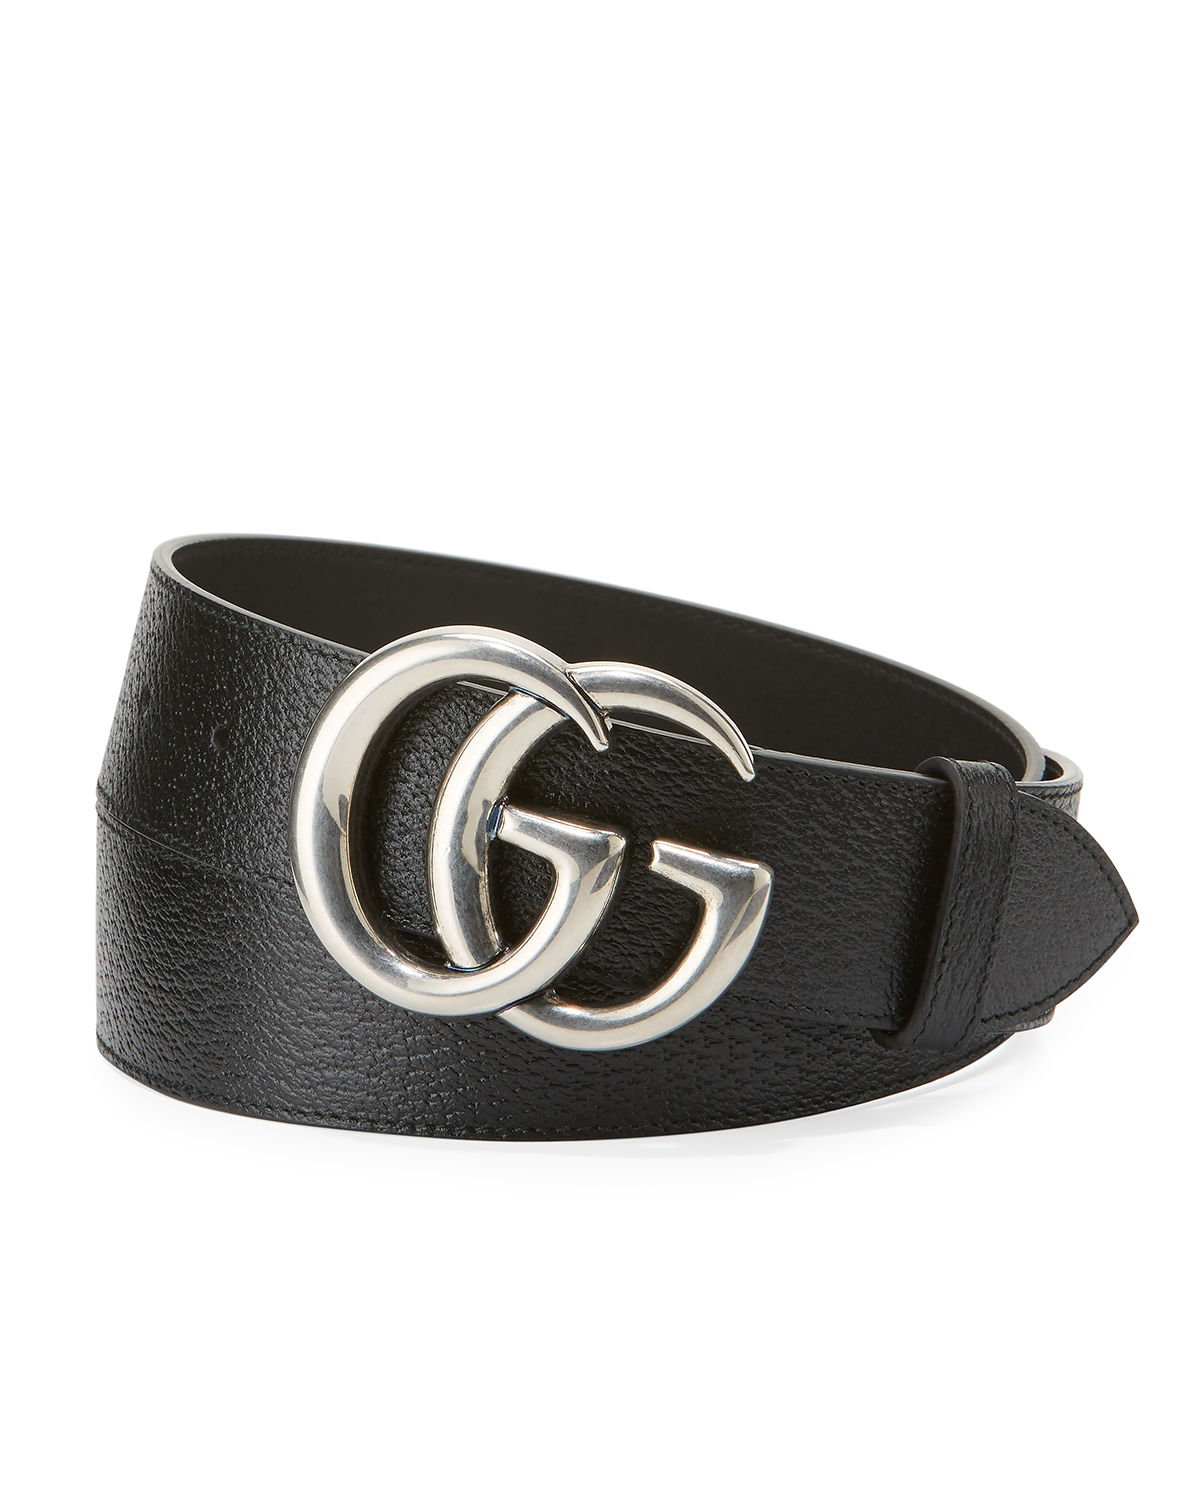 ff779b6c0b9e58 Gucci Men's Leather Belt with Silvertone Double-G Buckle | Neiman Marcus